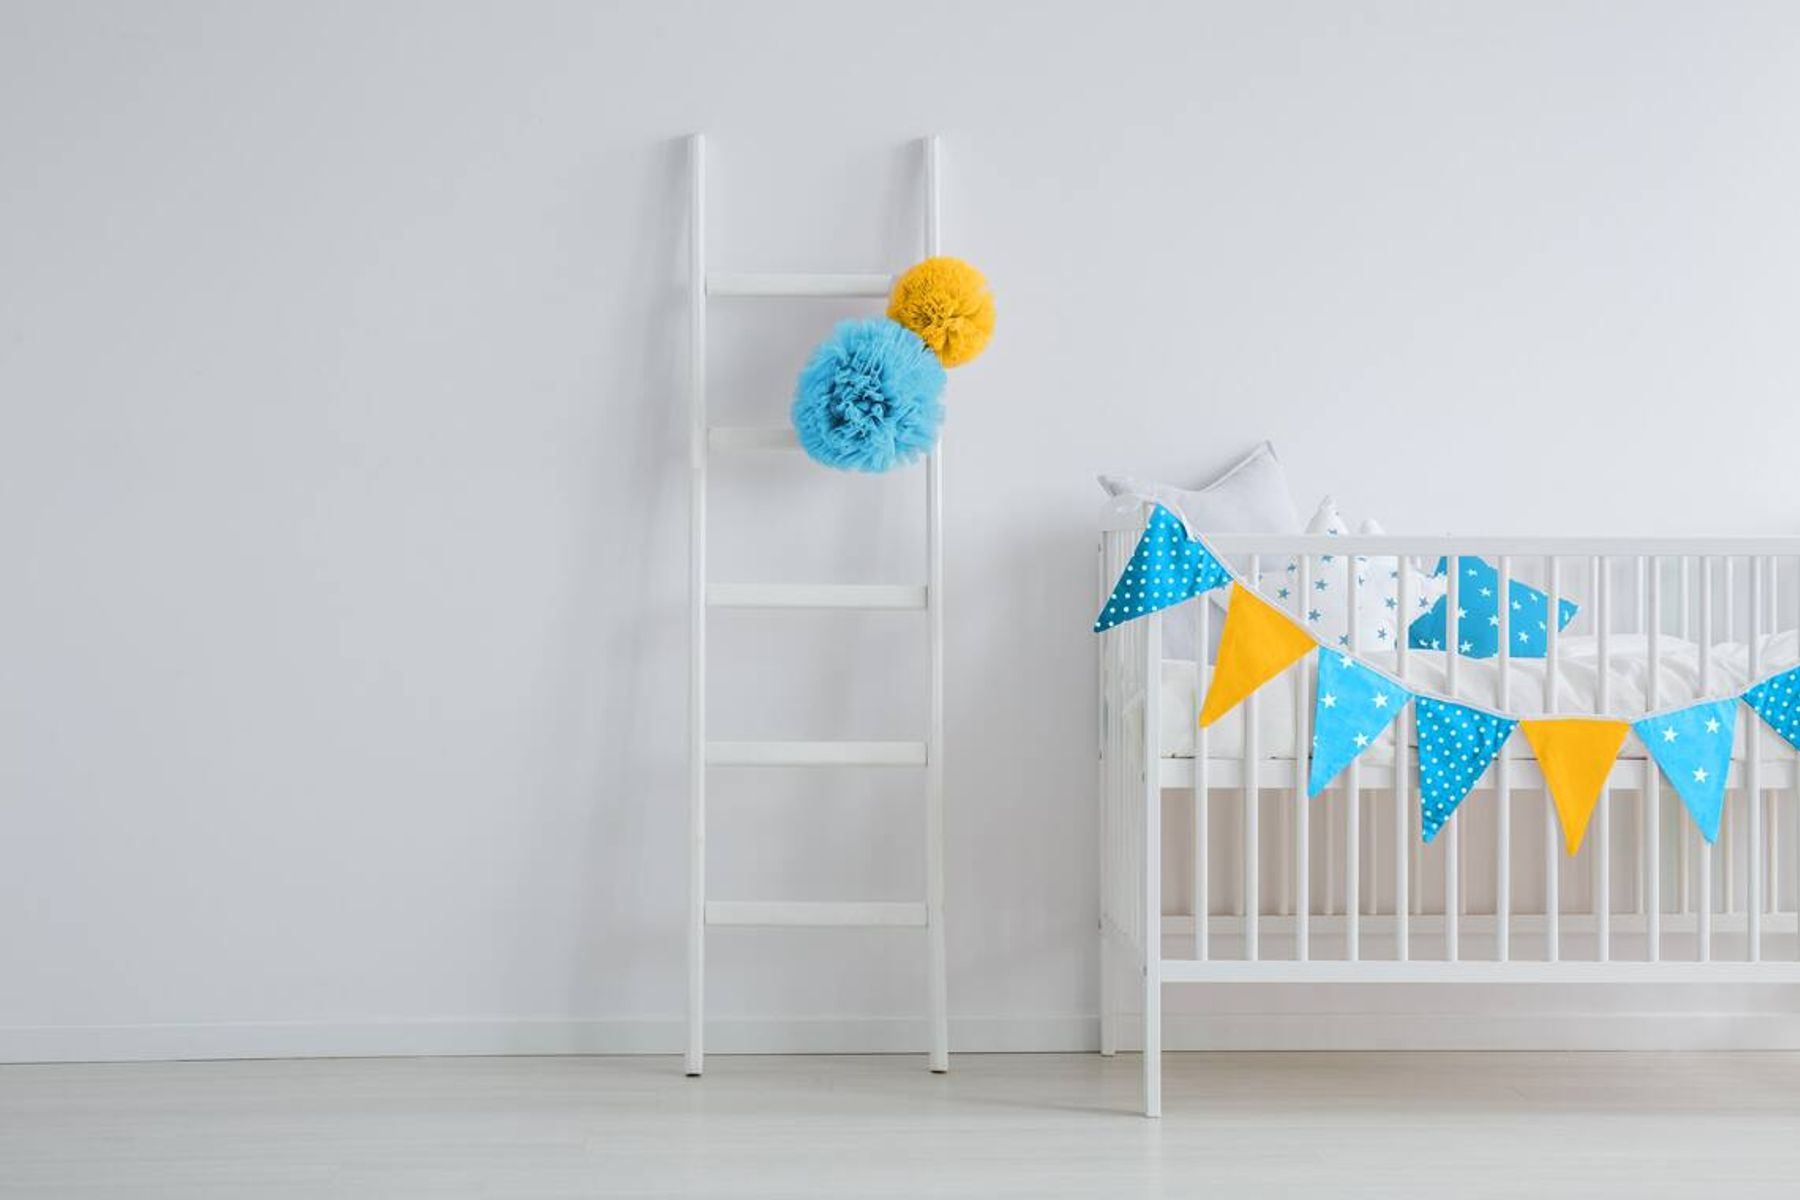 How to get scuff marks off a wall: Clean white wall with a white ladder, cot and bunting